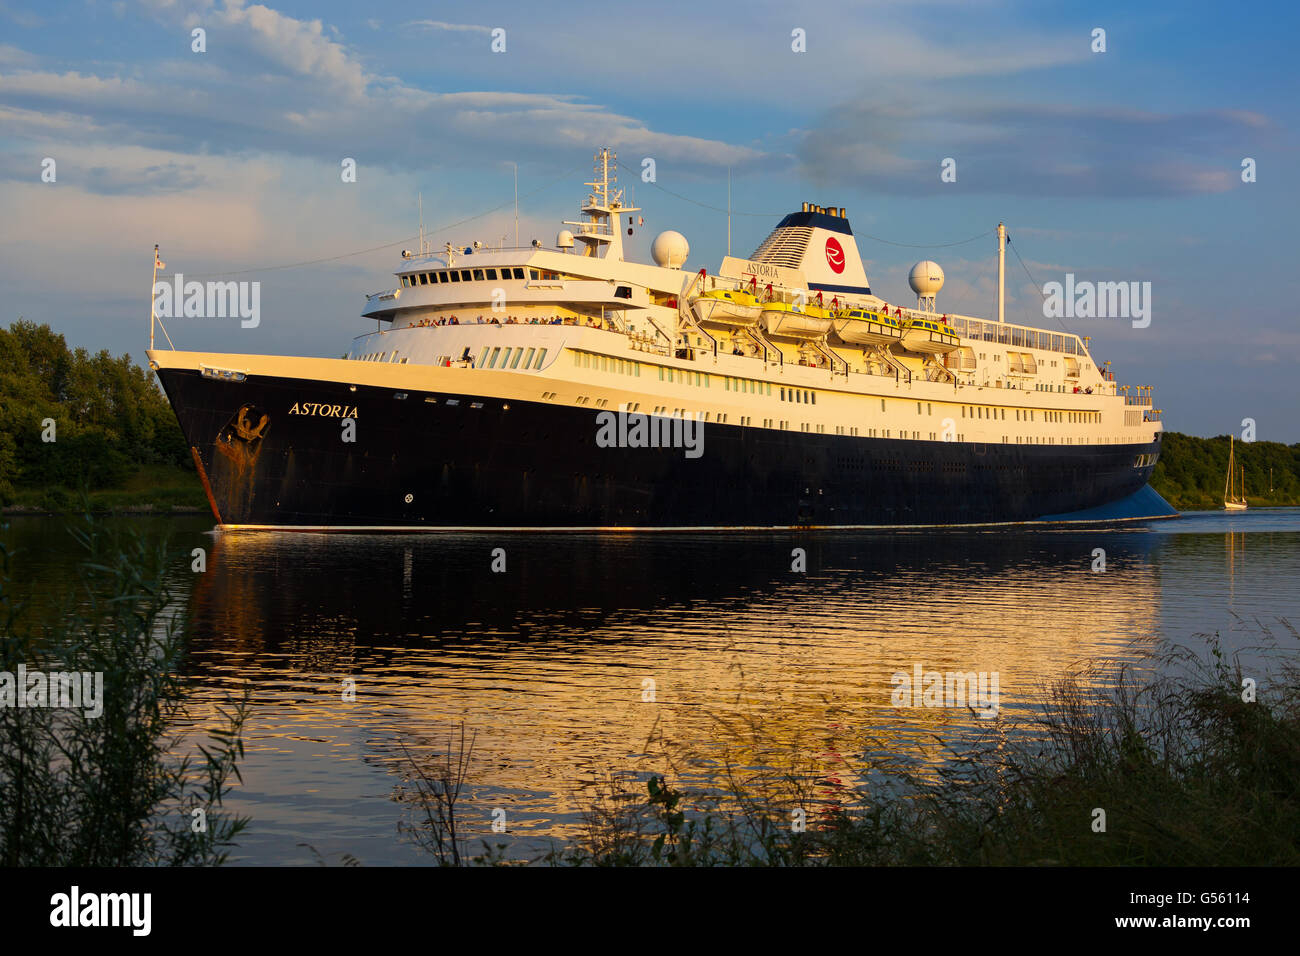 World's oldest active Ocean Liner Astoria (build in 1948) passing through the Kiel Canal on it's way from Amsterdam Stock Photo